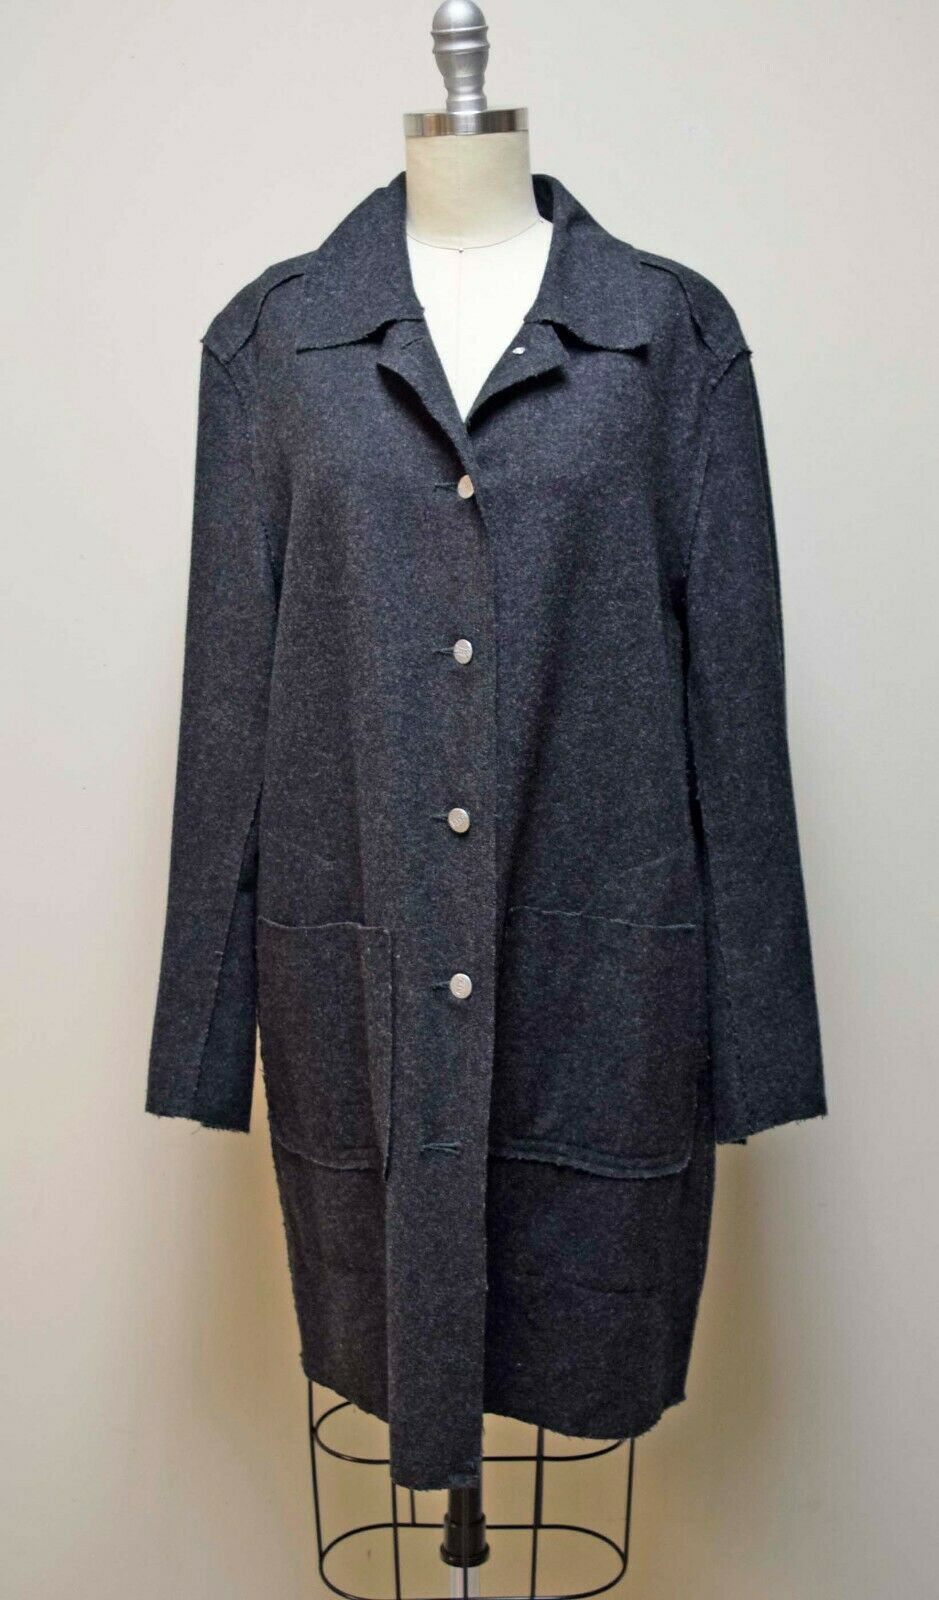 LIFE BASICS Reclaimed Wool Gray Flannel Unlined Knee Length Coat Size S/M